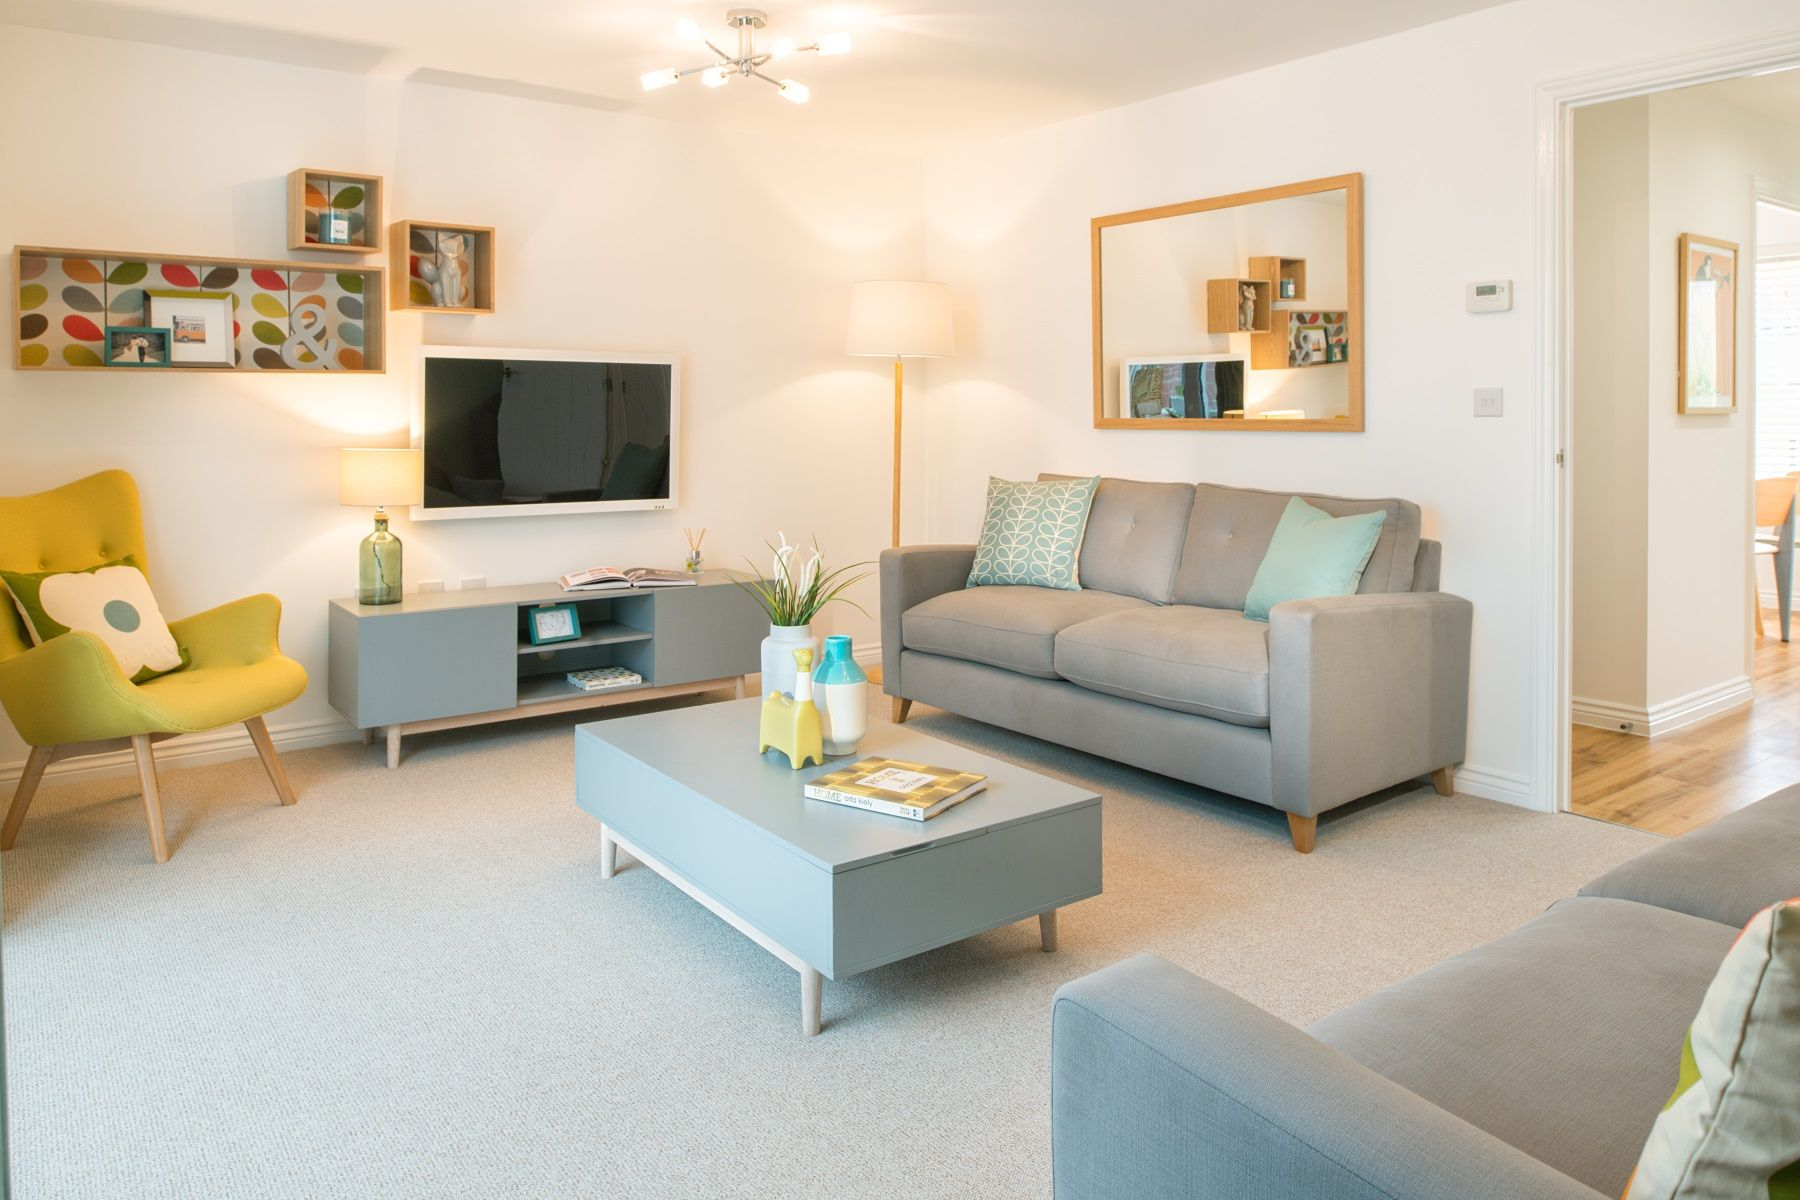 TW Exeter - Hele Park - Flatford example living room 2